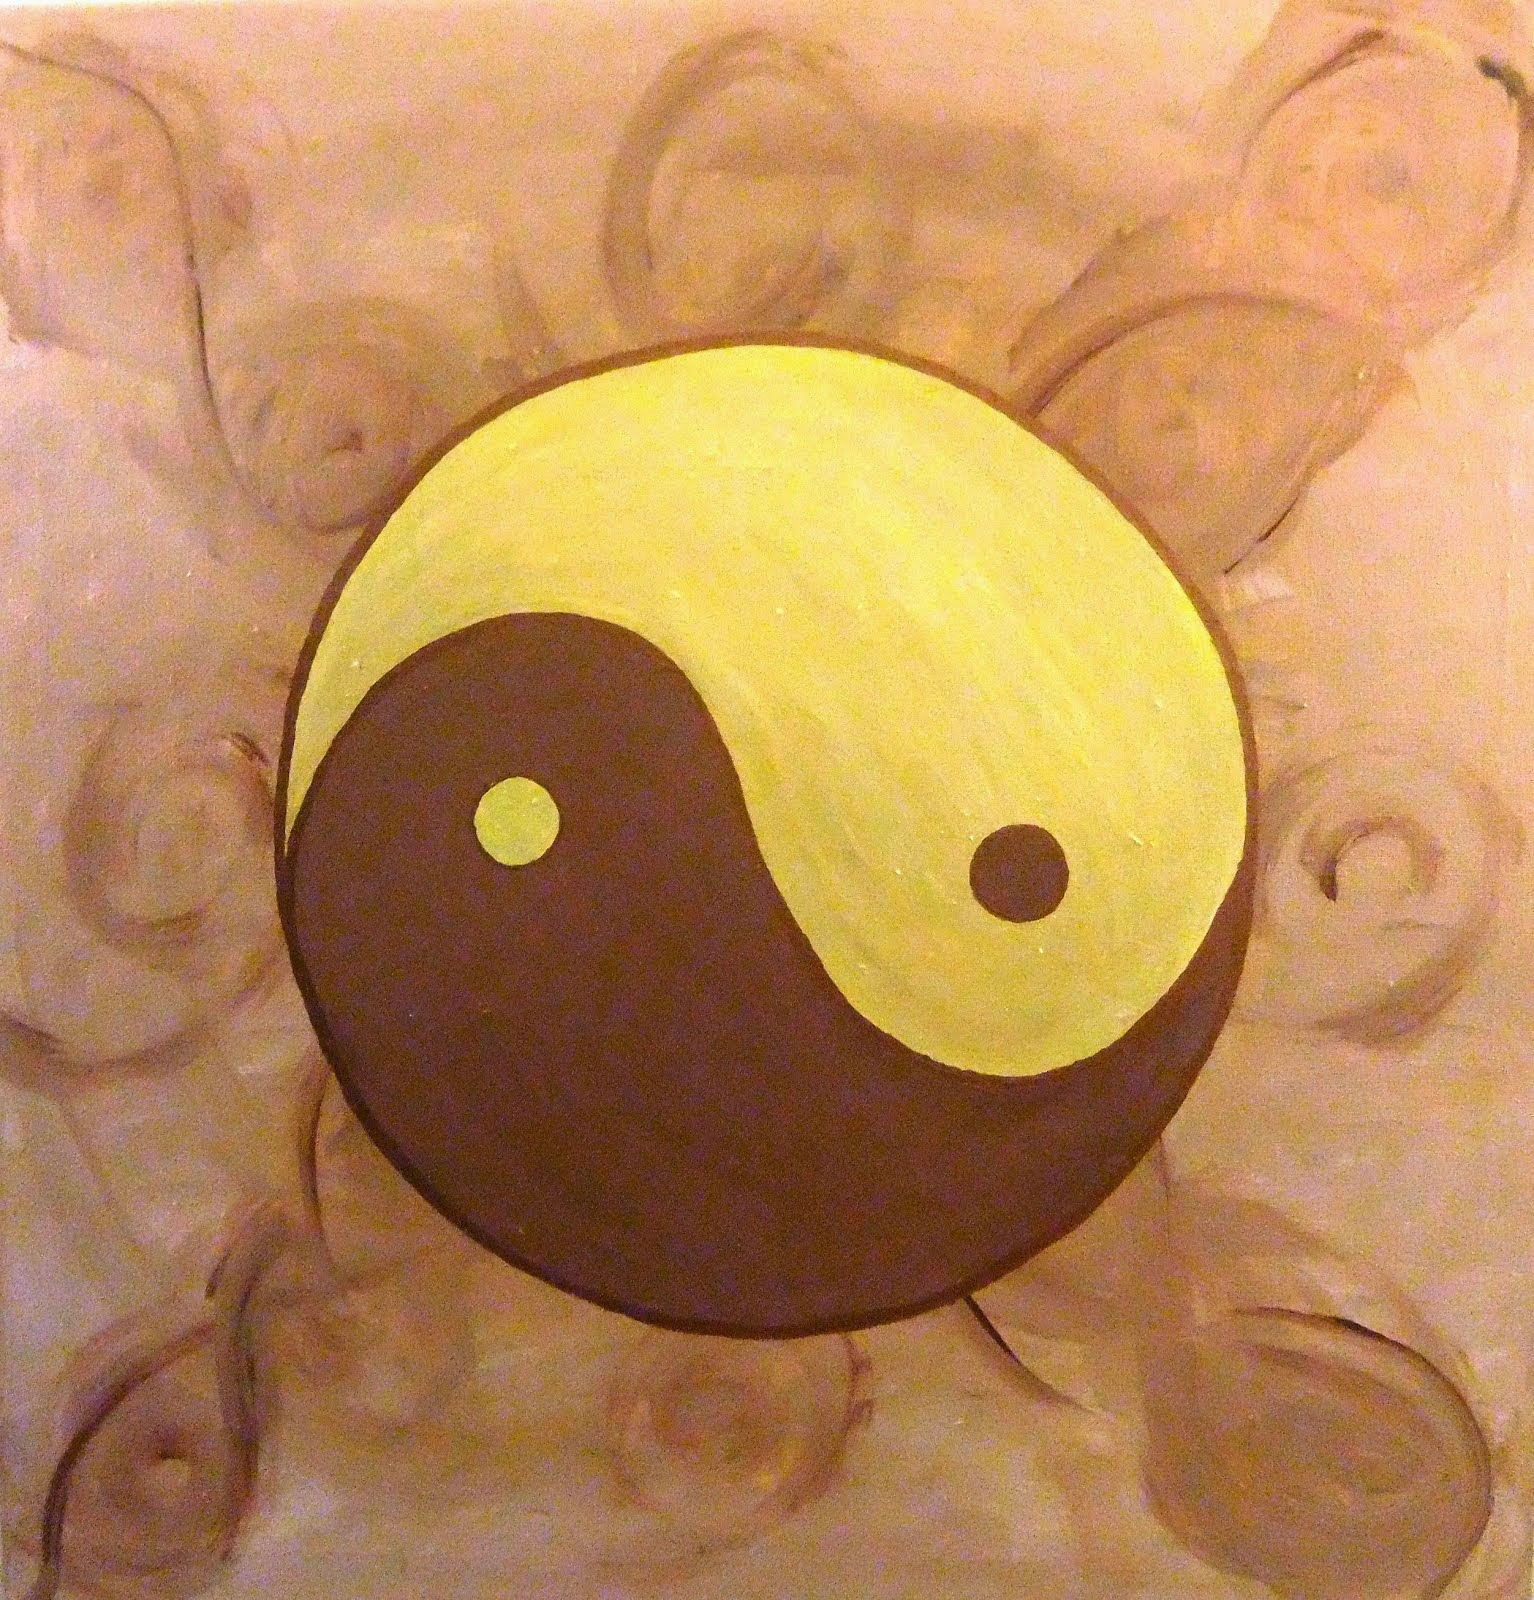 Yin Yang, Equilibrio, Aceptación